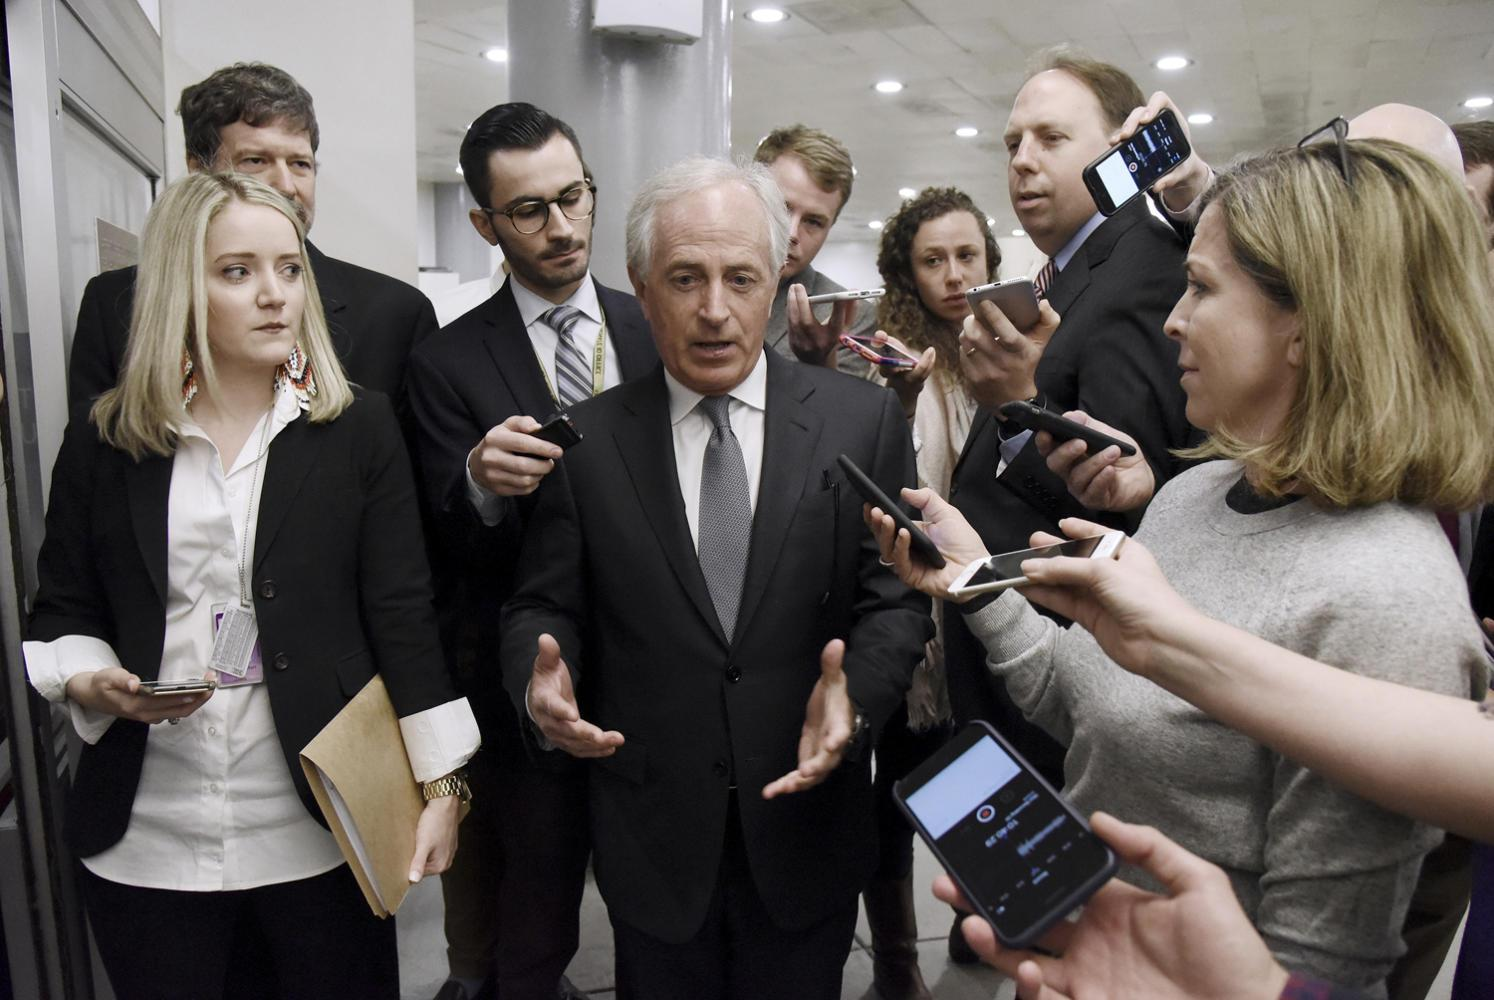 Sen. Bob Corker, chairman of the Senate Foreign Relations Committee, talks to reporters Tuesday, March 13, 2018 on Capitol Hill about CIA Director Mike Pompeo's nomination as Secretary of State in Washington, D.C. (Olivier Douliery/Abaca Press/TNS)